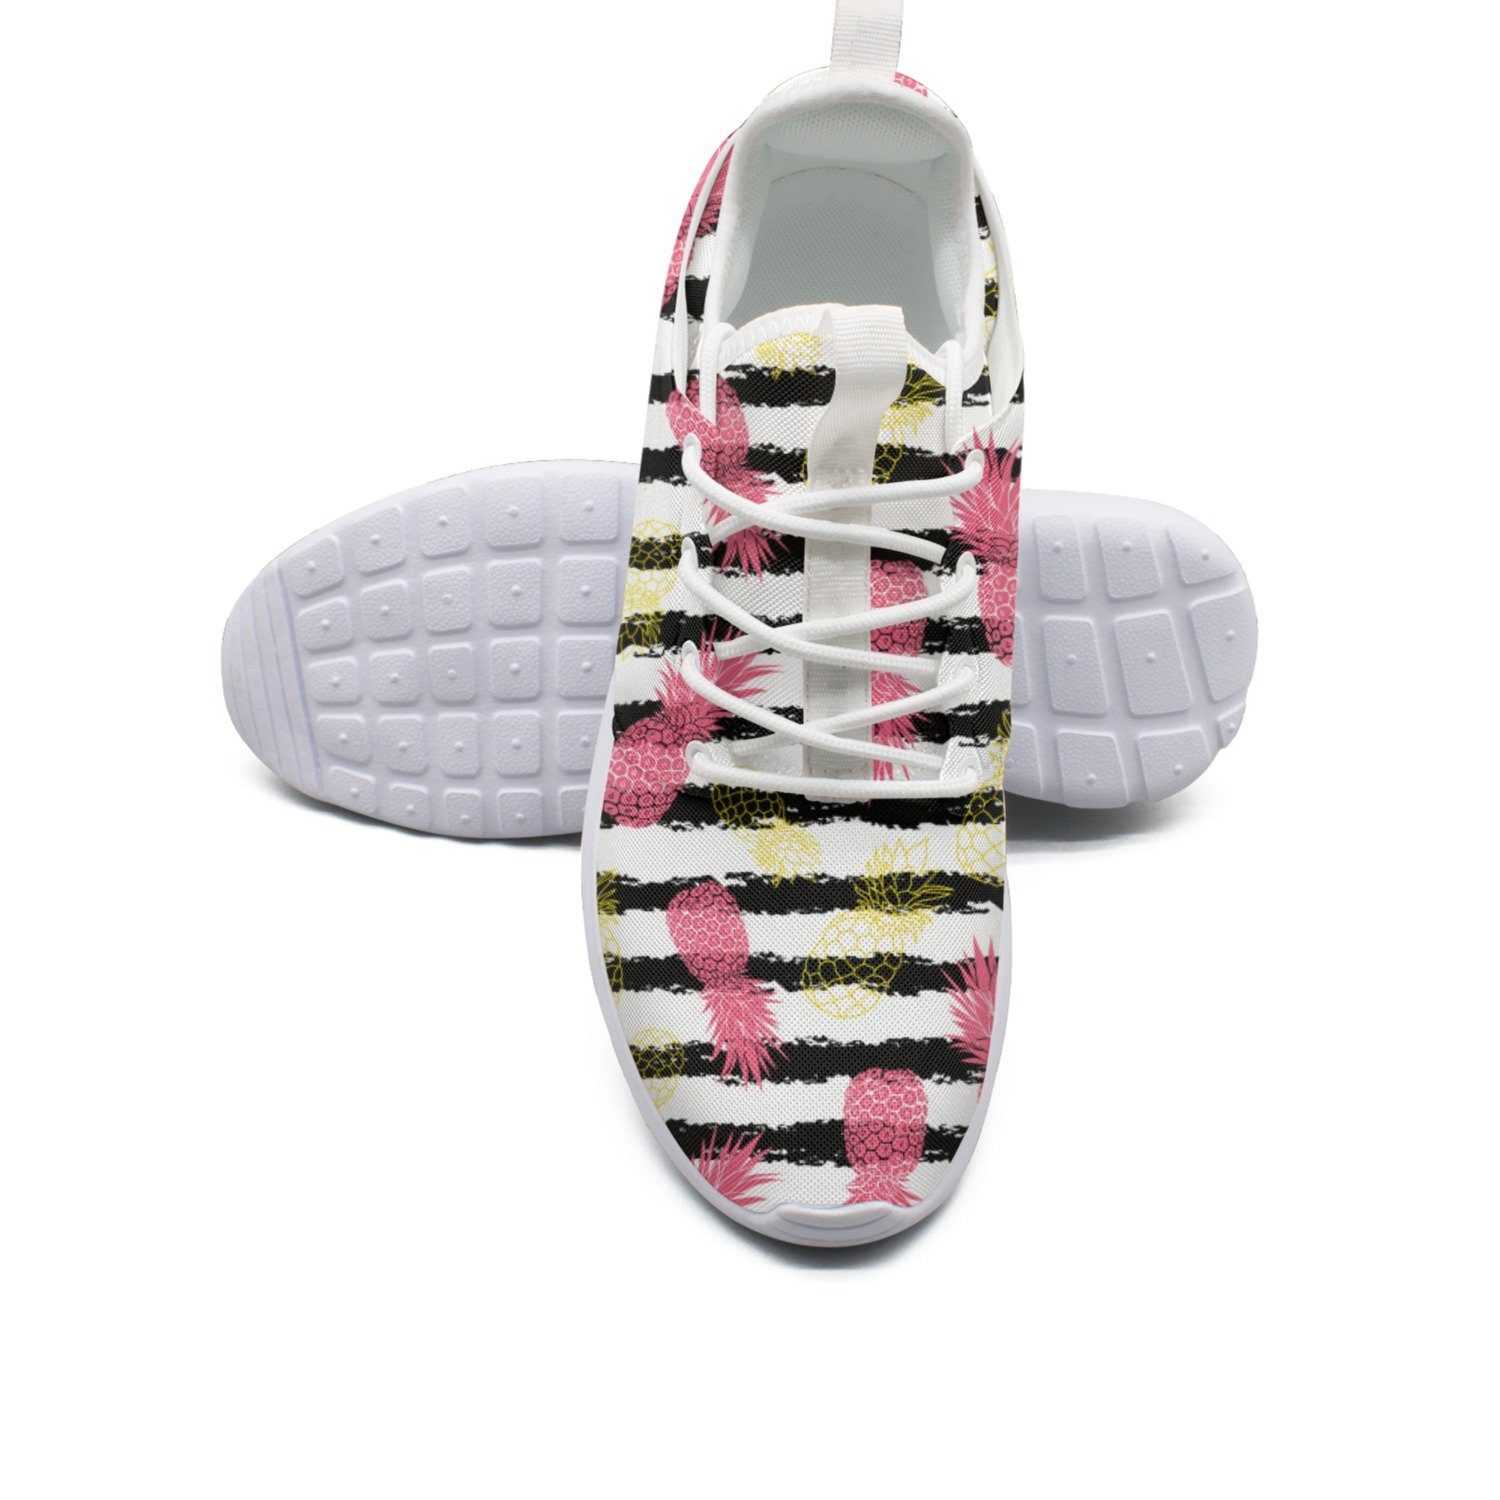 separation shoes 7a292 214fe ERSER Vintage Grunge Pink and Yellow Pineapples Run Shoes Women Women Women  B07D9KHJ1T Fashion Sneakers 9a0dad